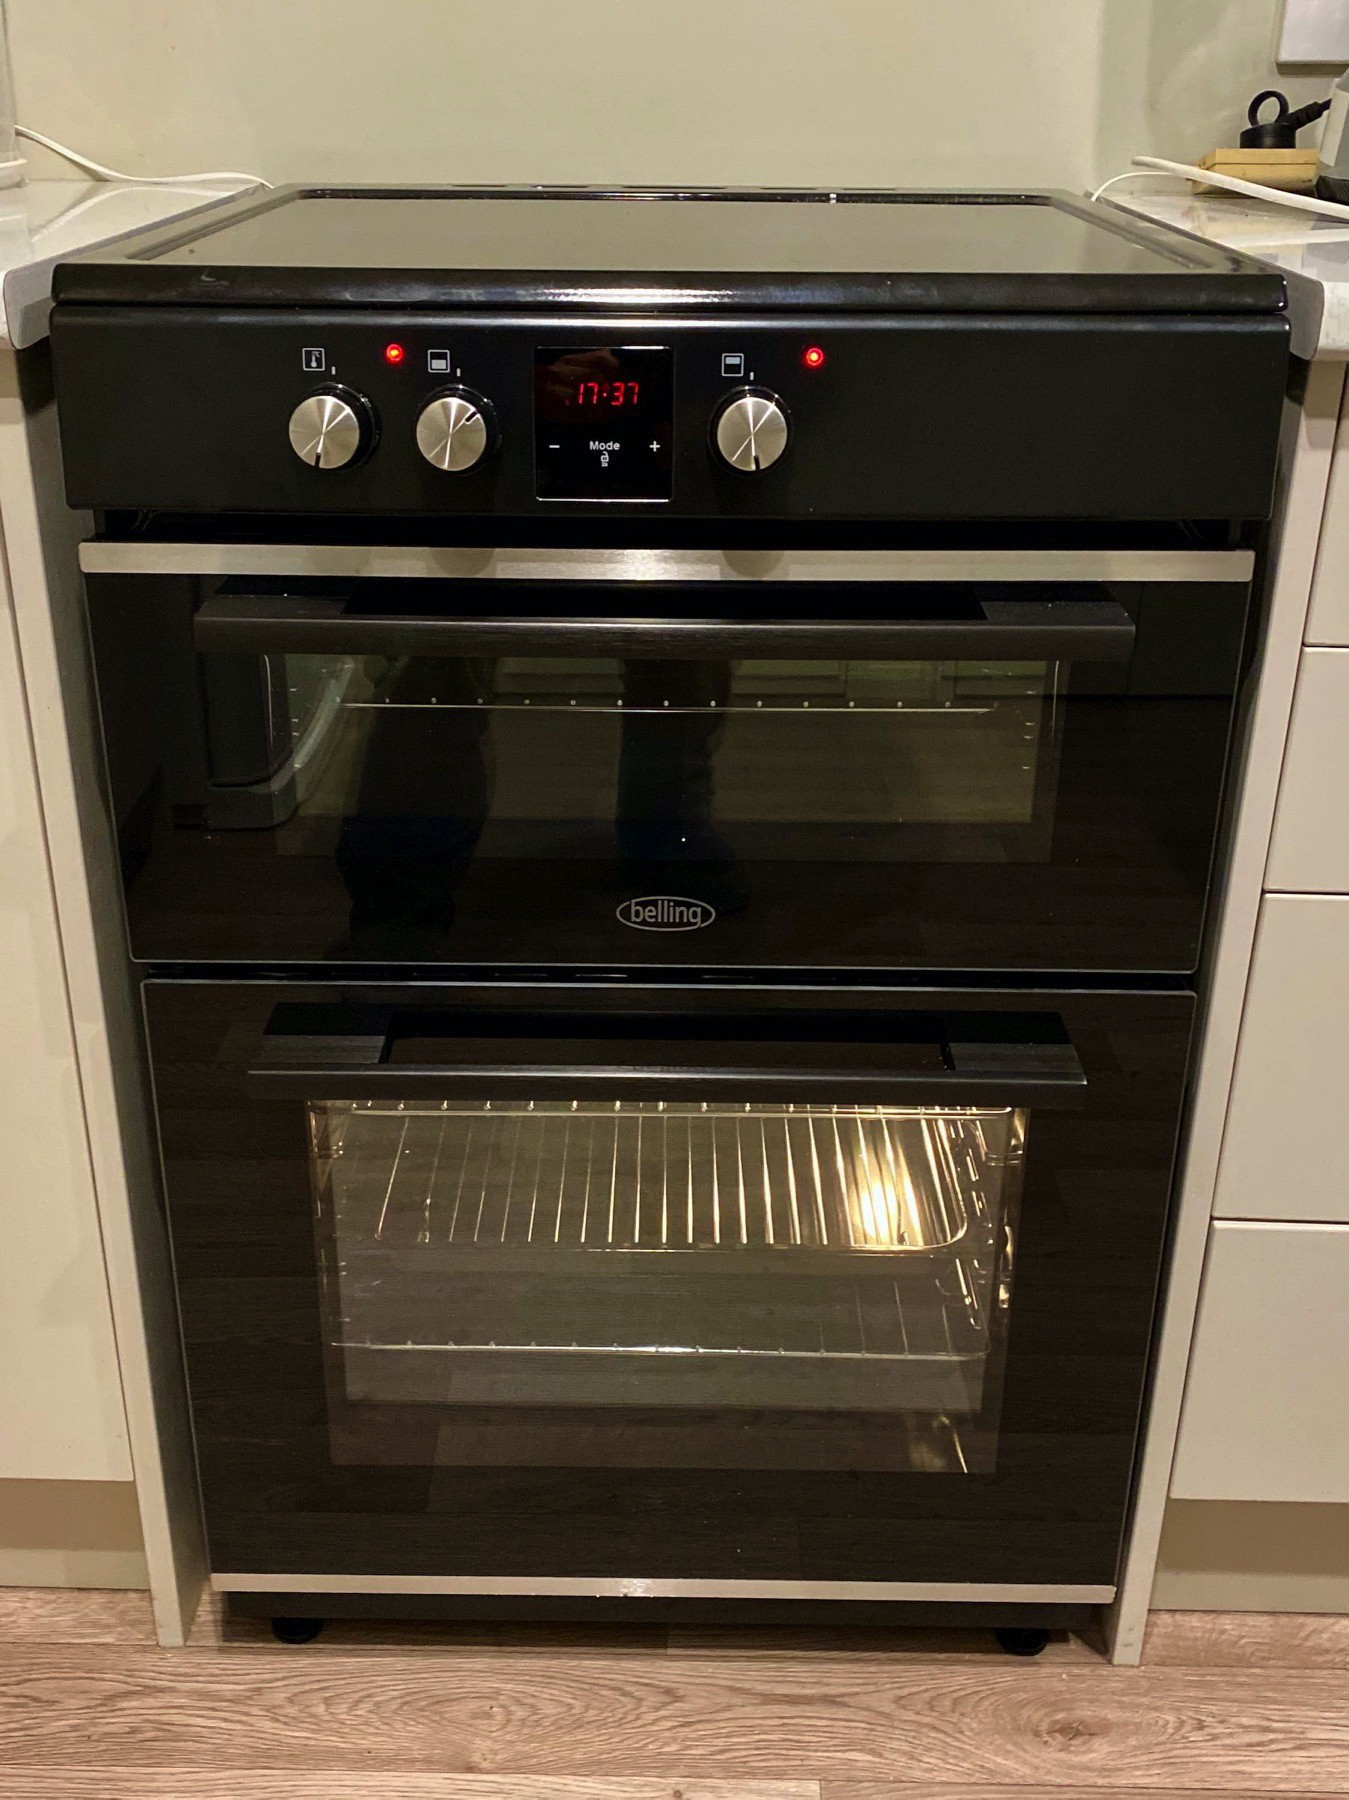 Belling dual oven with induction hob.